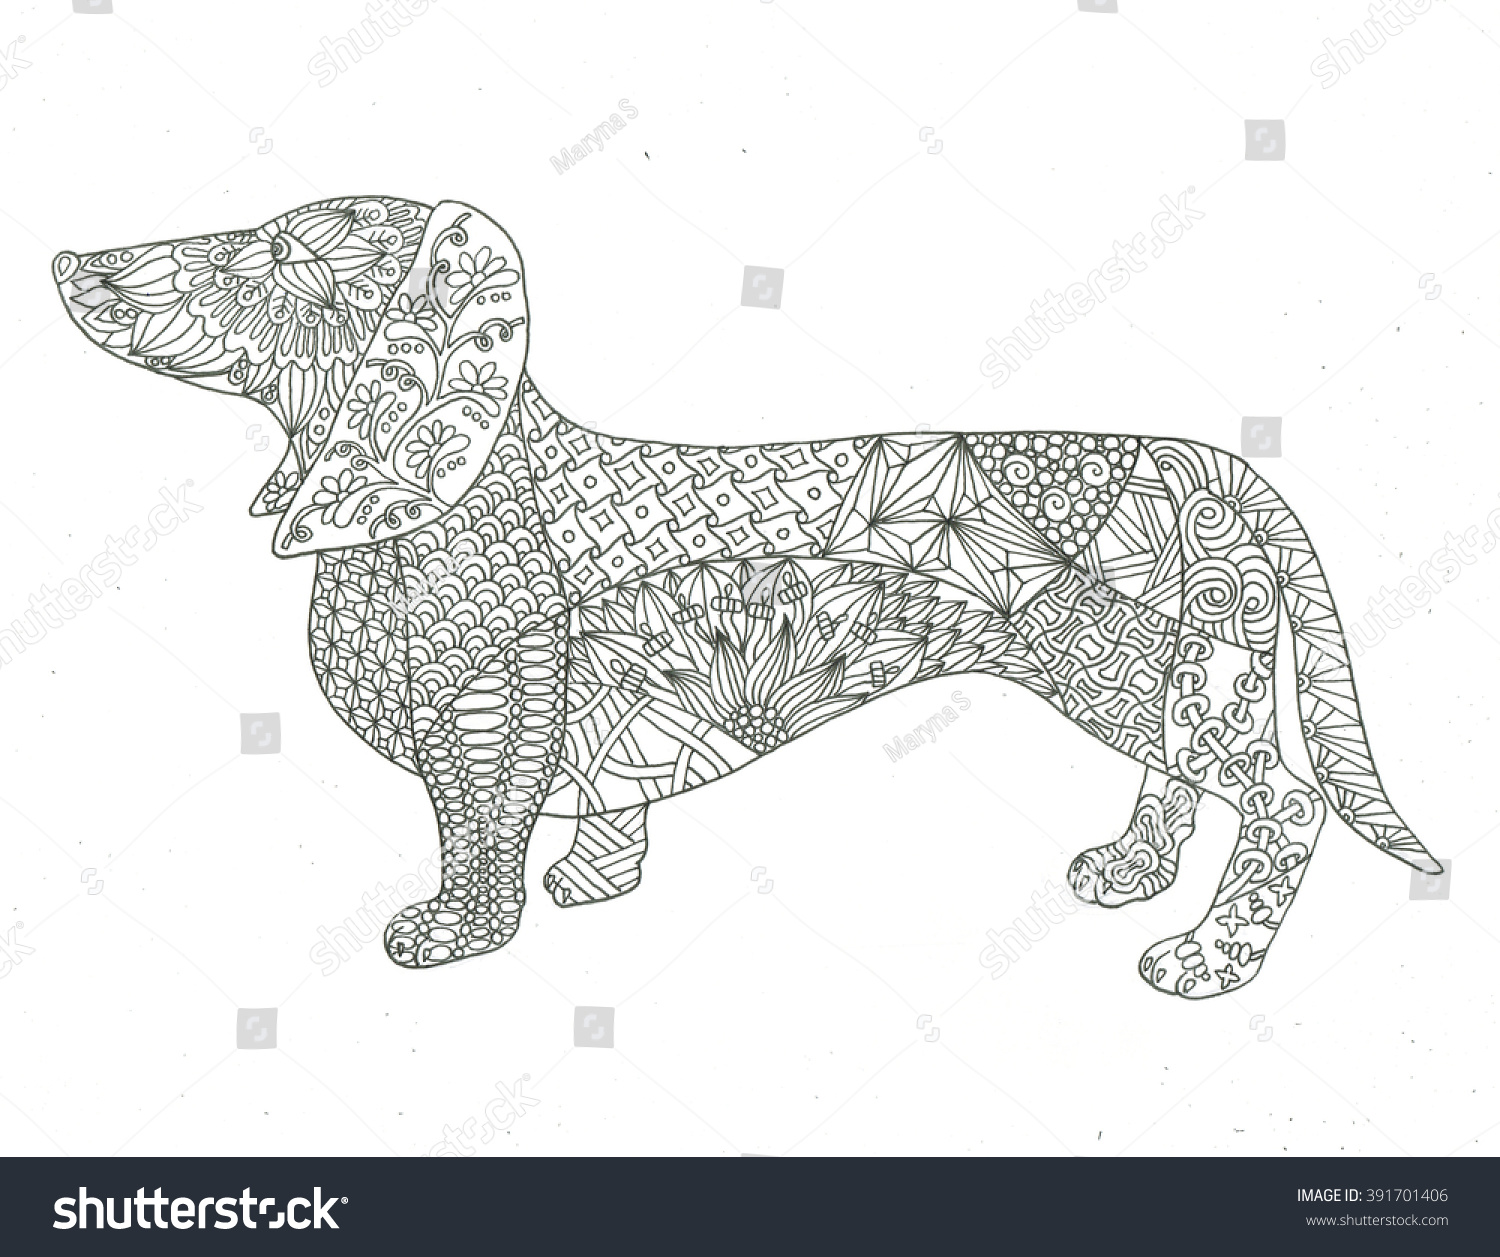 dachshund dog coloring page stock photo 391701406 shutterstock